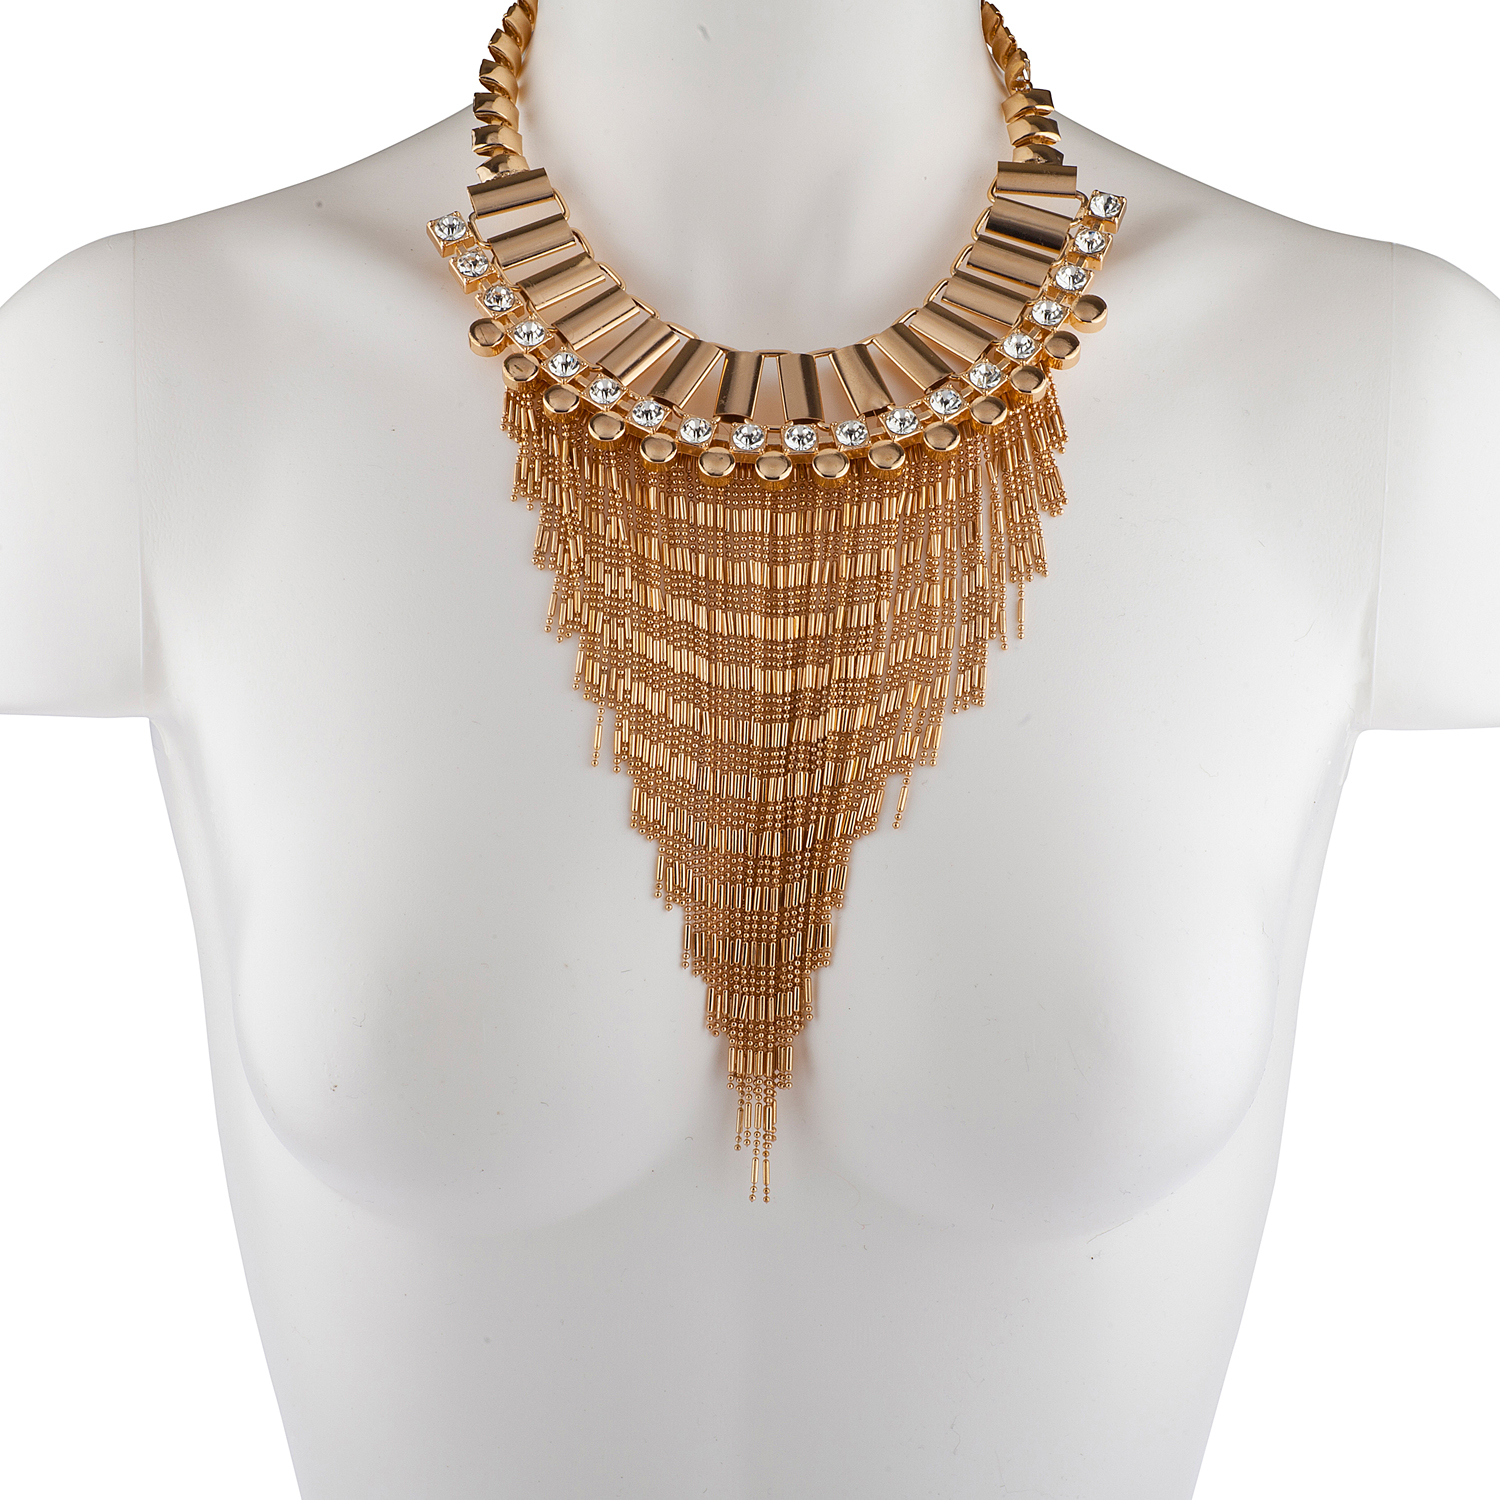 wht ns trendy necklace handmade necklaces products aeravida waterfall product details pearls bib natural